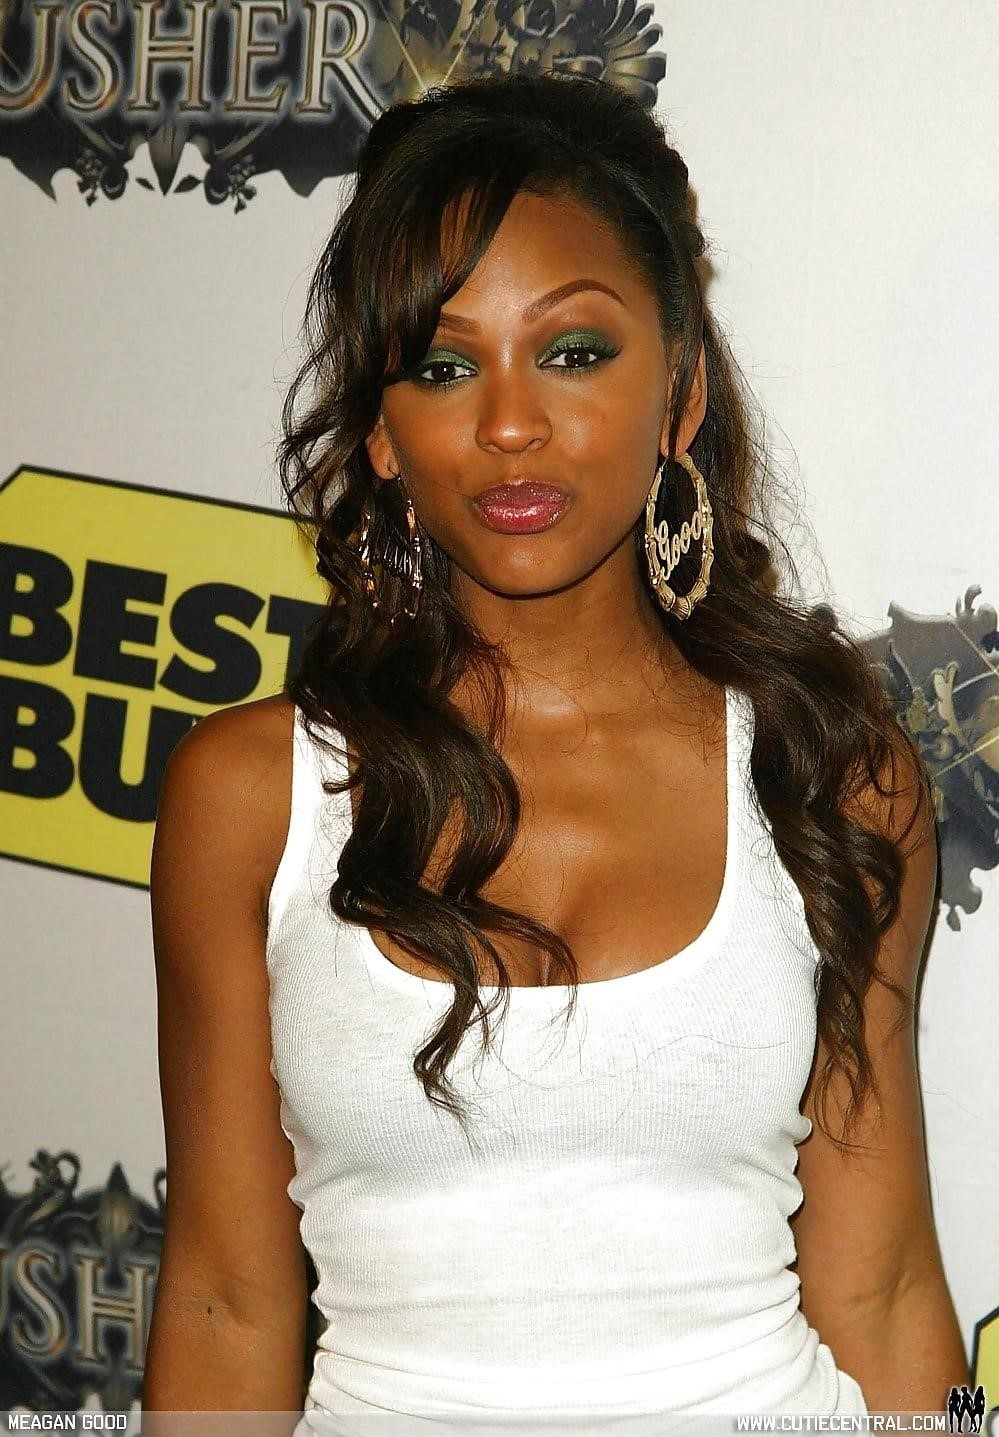 Meagan good nude pictures-8413